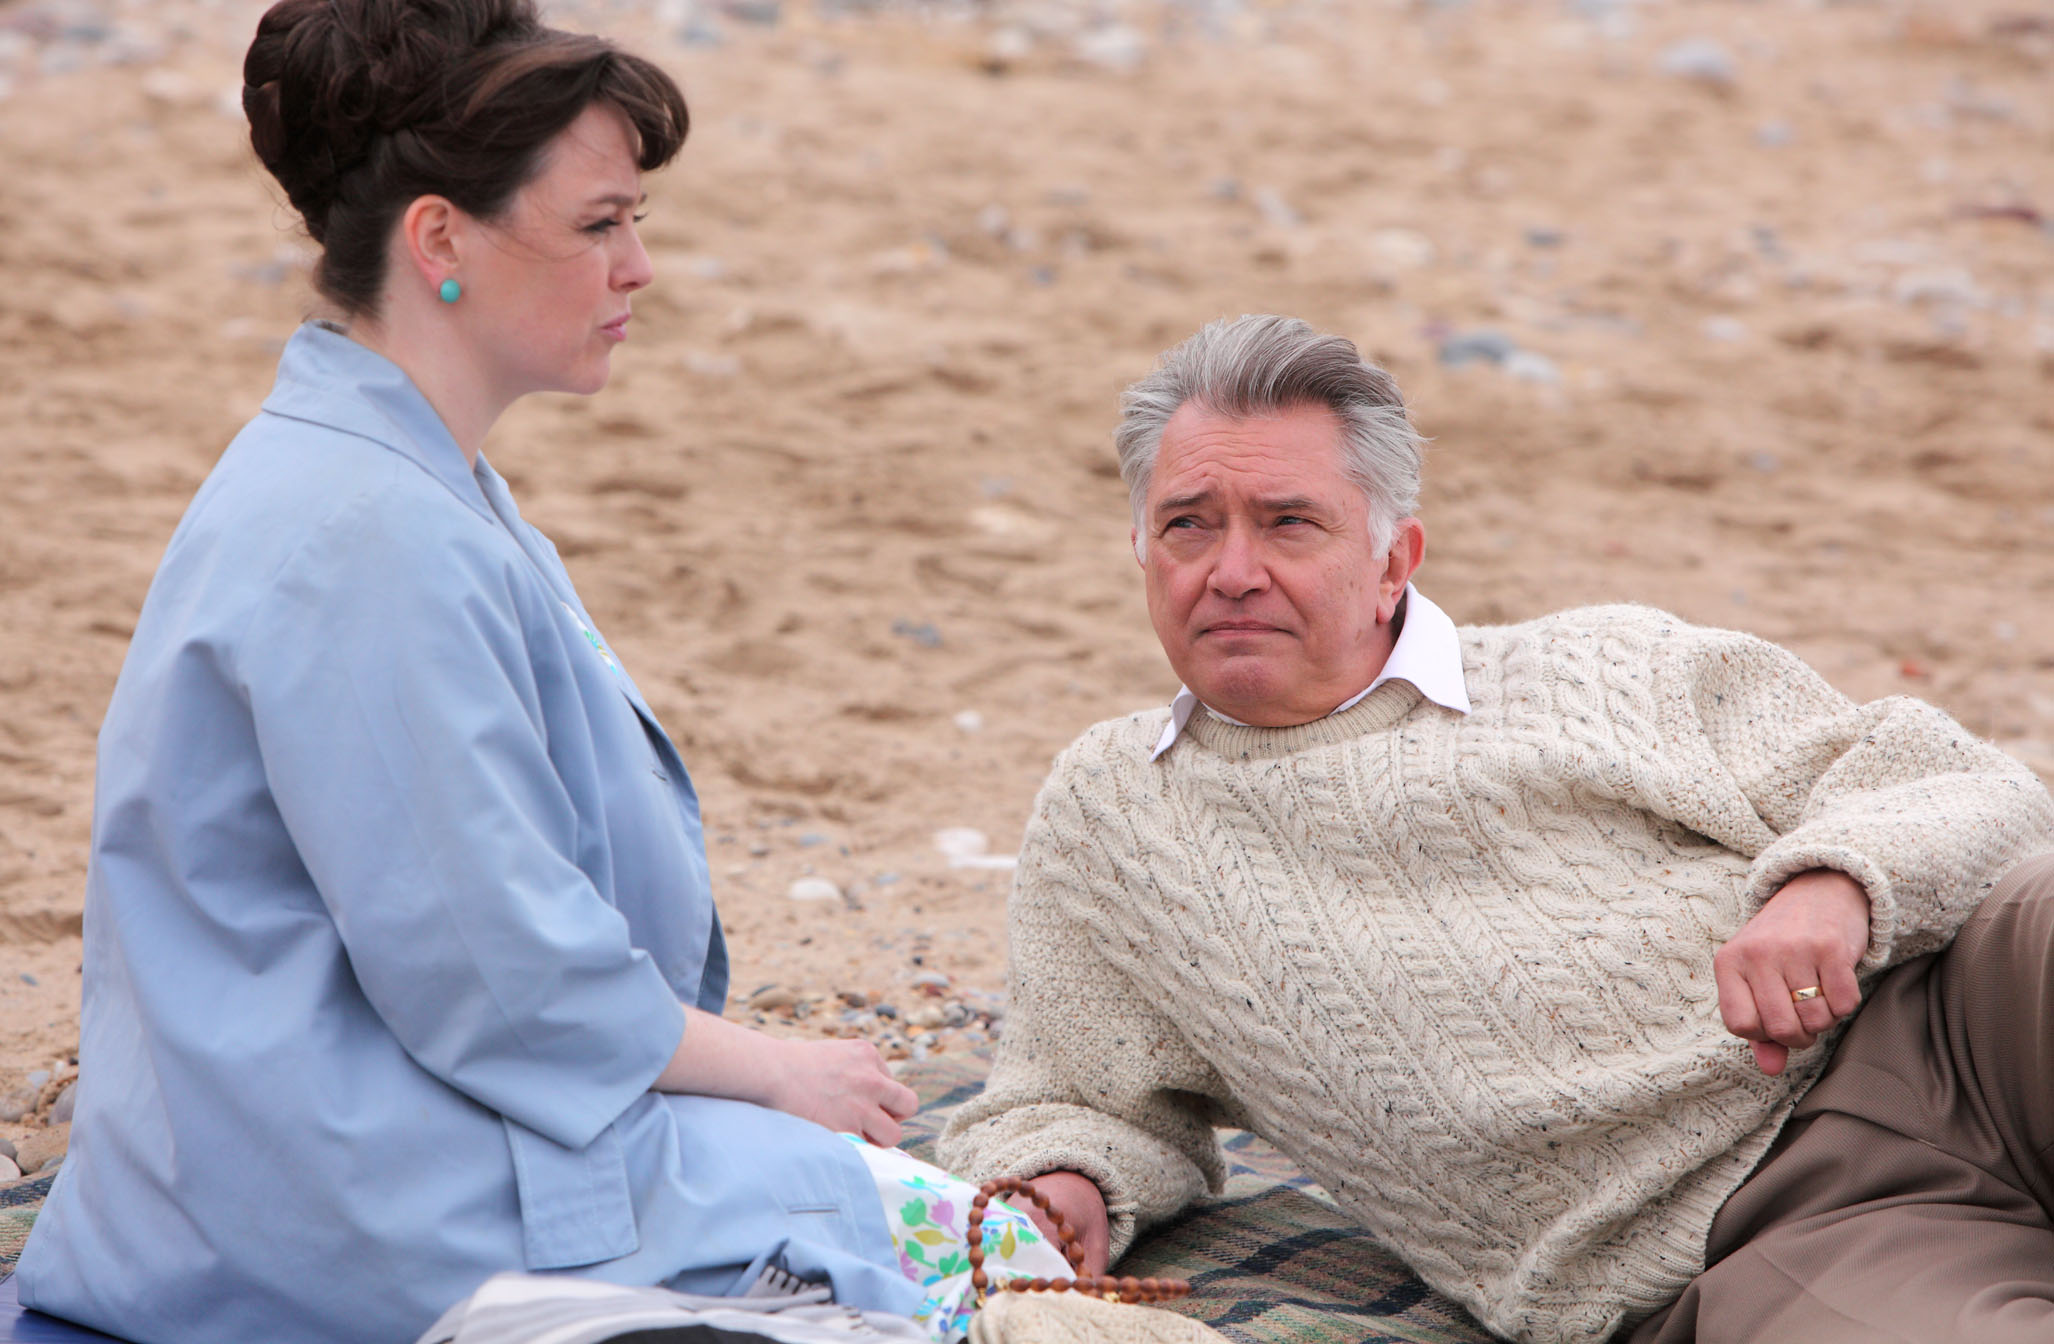 Inspector George Gently, played by Martin Shaw, sits on the beach with Lisa Bacchus, played by Marie Clare Pullen